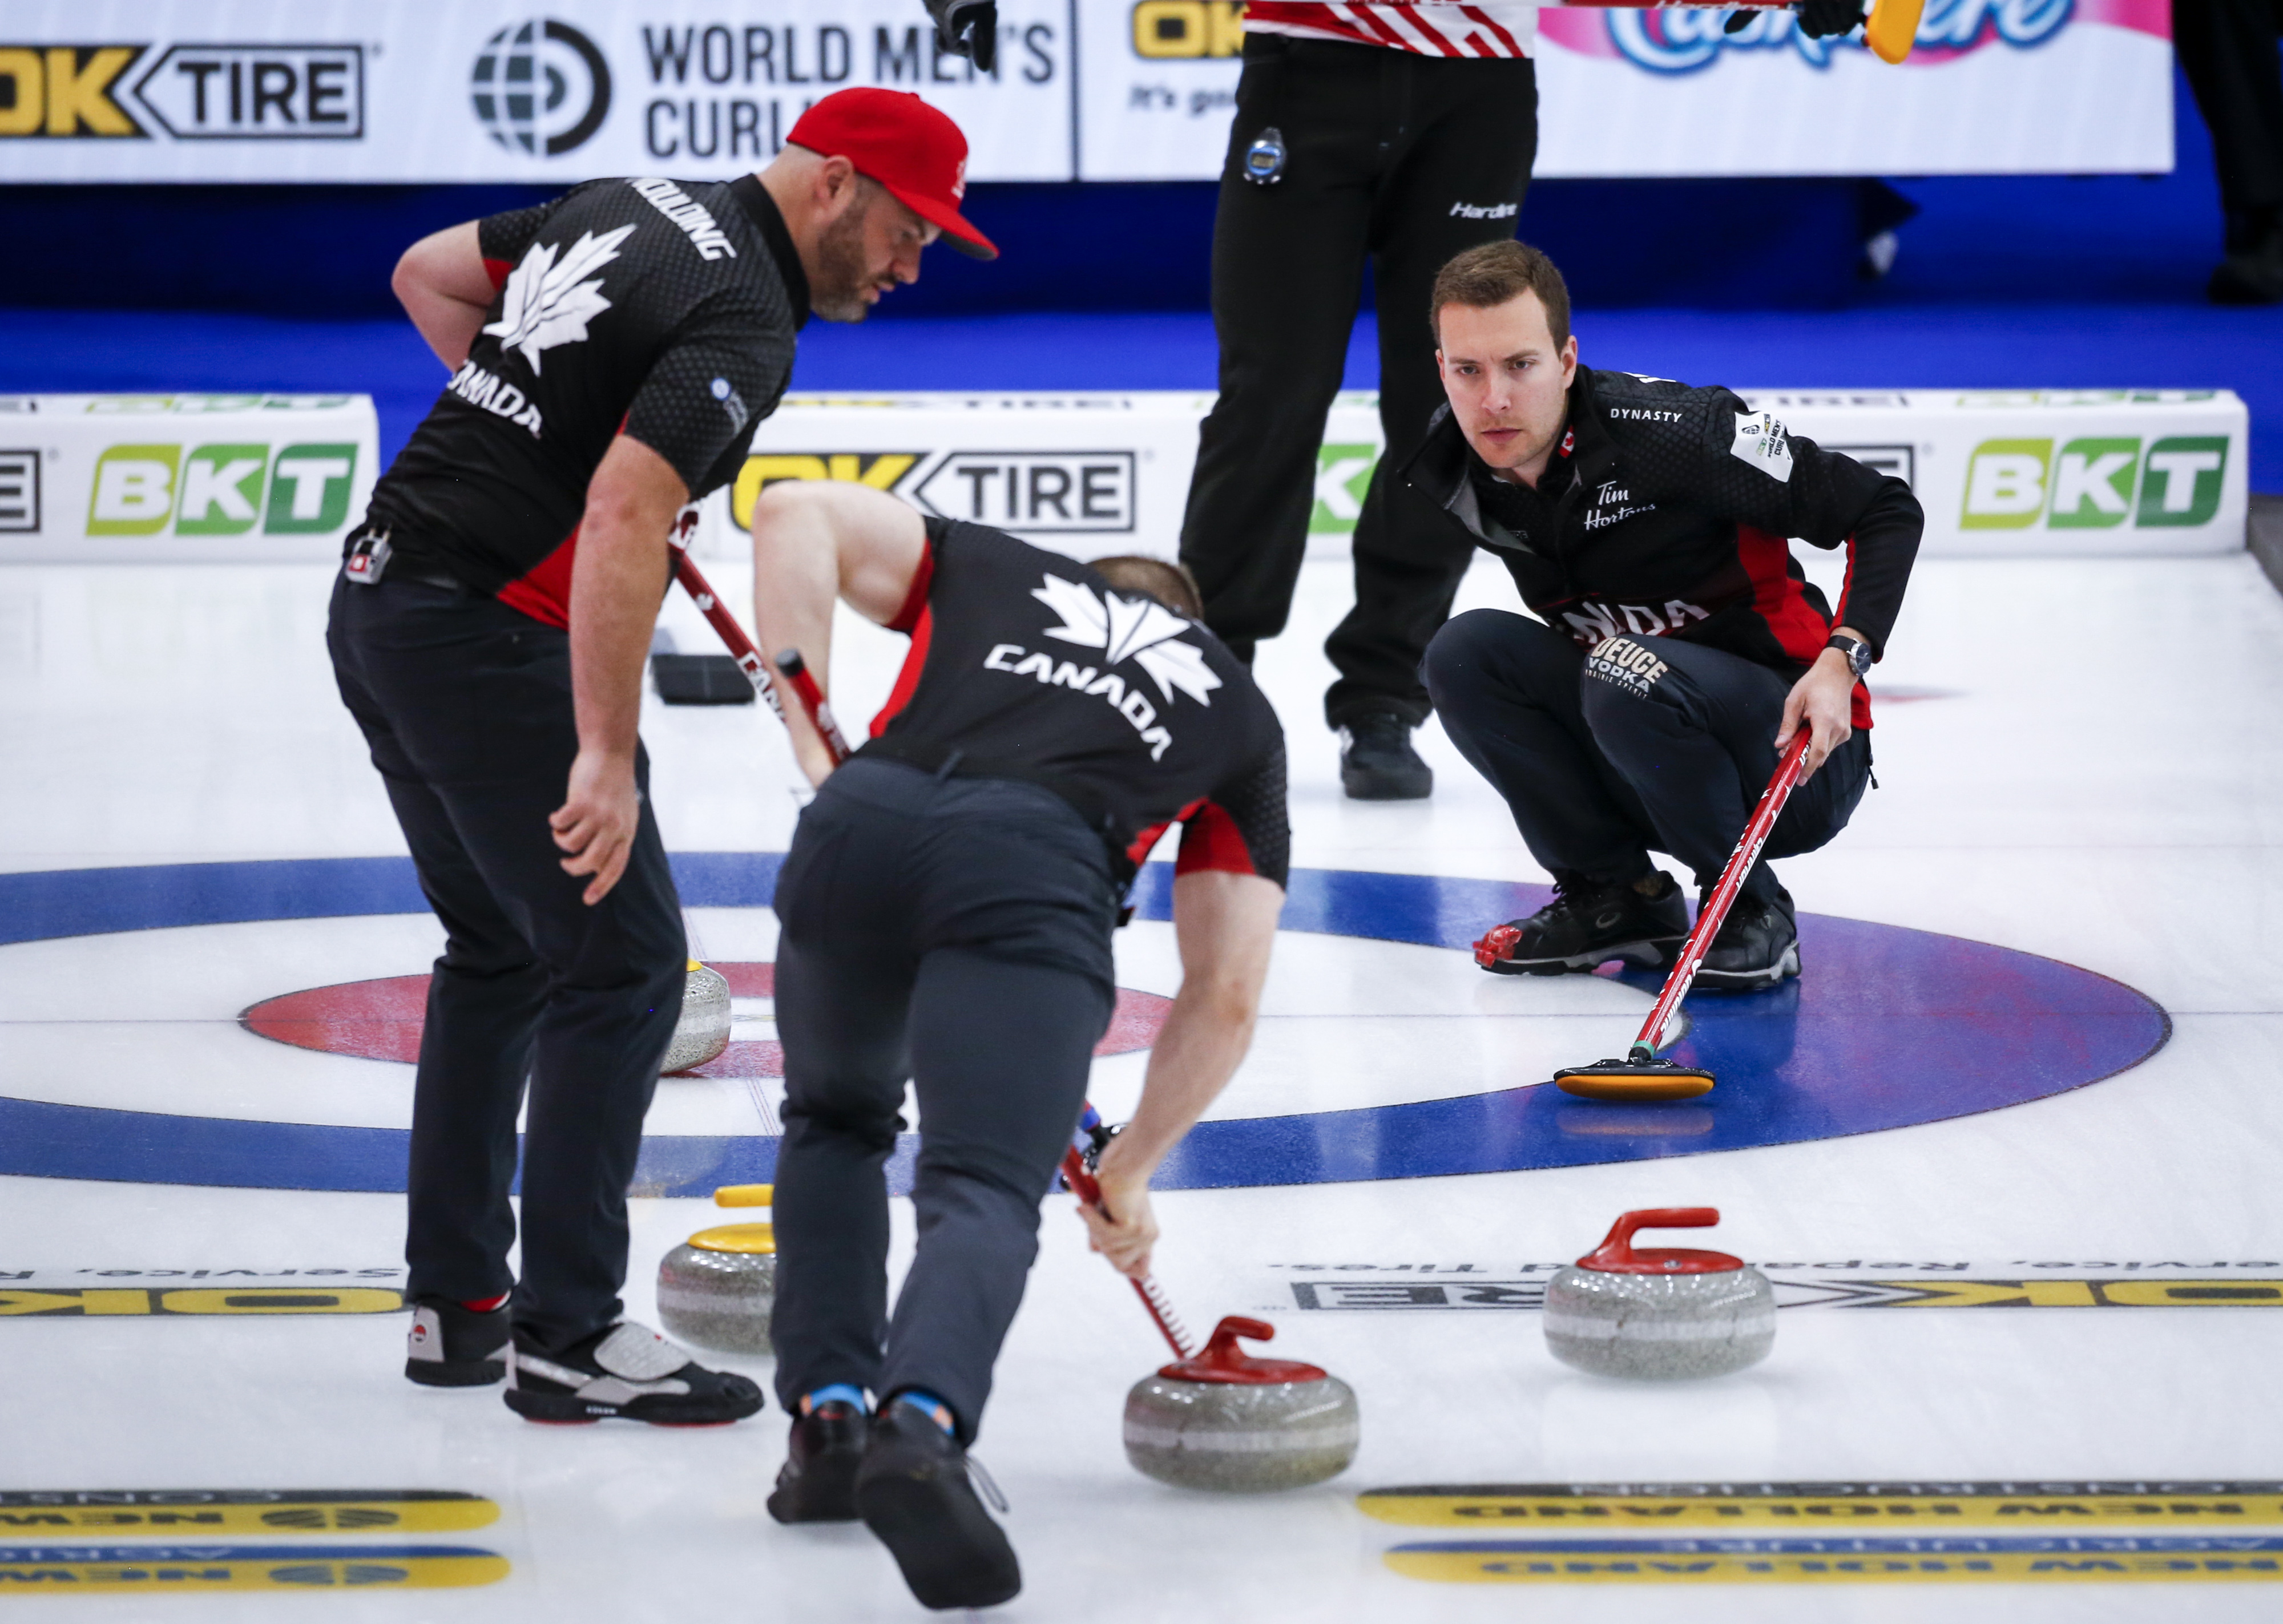 Team Canada skip Brendan Bottcher, centre, directs his teammates as they play Denmark at the Men's World Curling Championships in Calgary, Alta., Saturday, April 3, 2021.